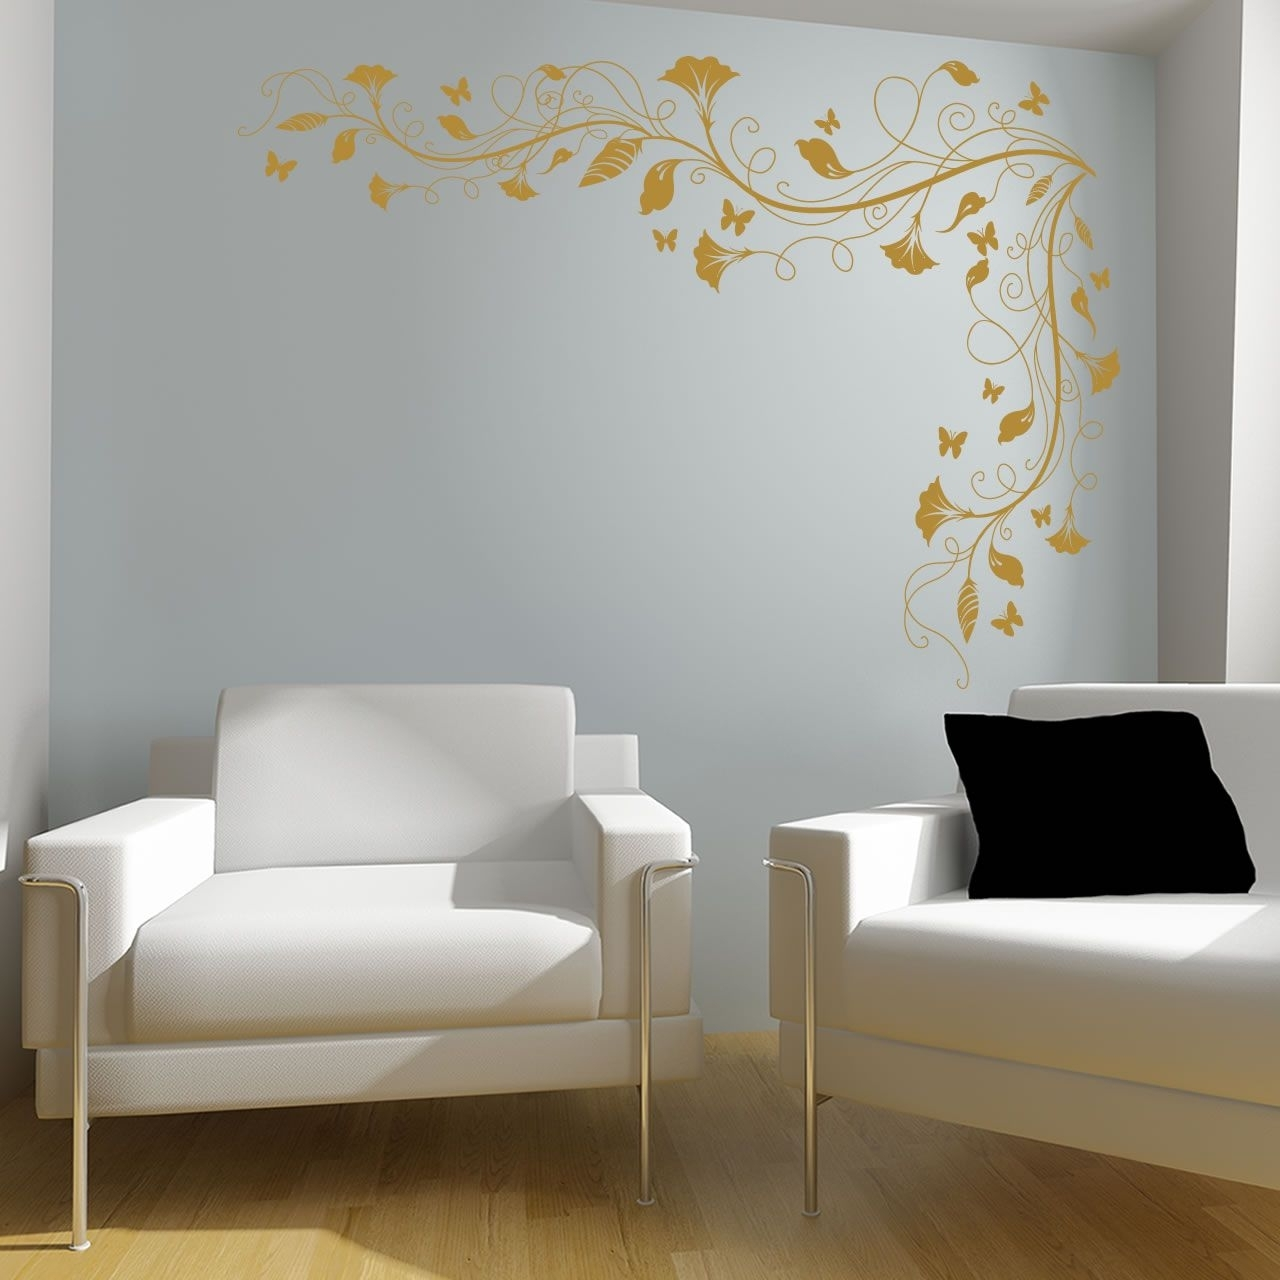 Spartacus Art – Wall Stickers / Decals / Transfers – Vines And Throughout Famous Corner Wall Art (View 17 of 20)